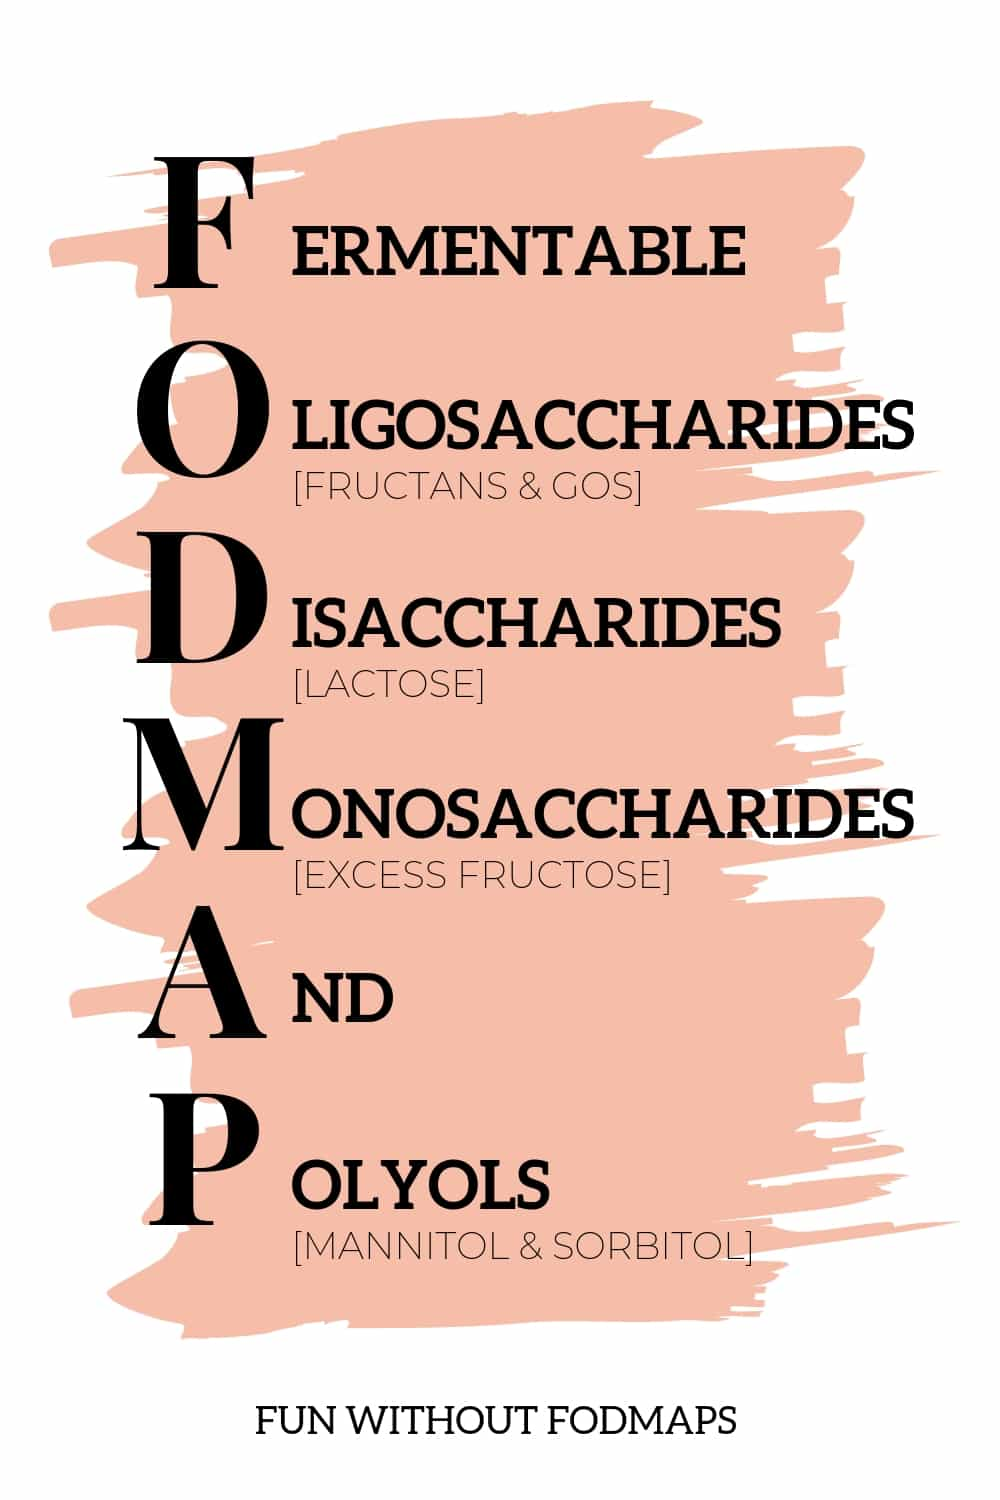 A graphic breaking down the FODMAP acronym